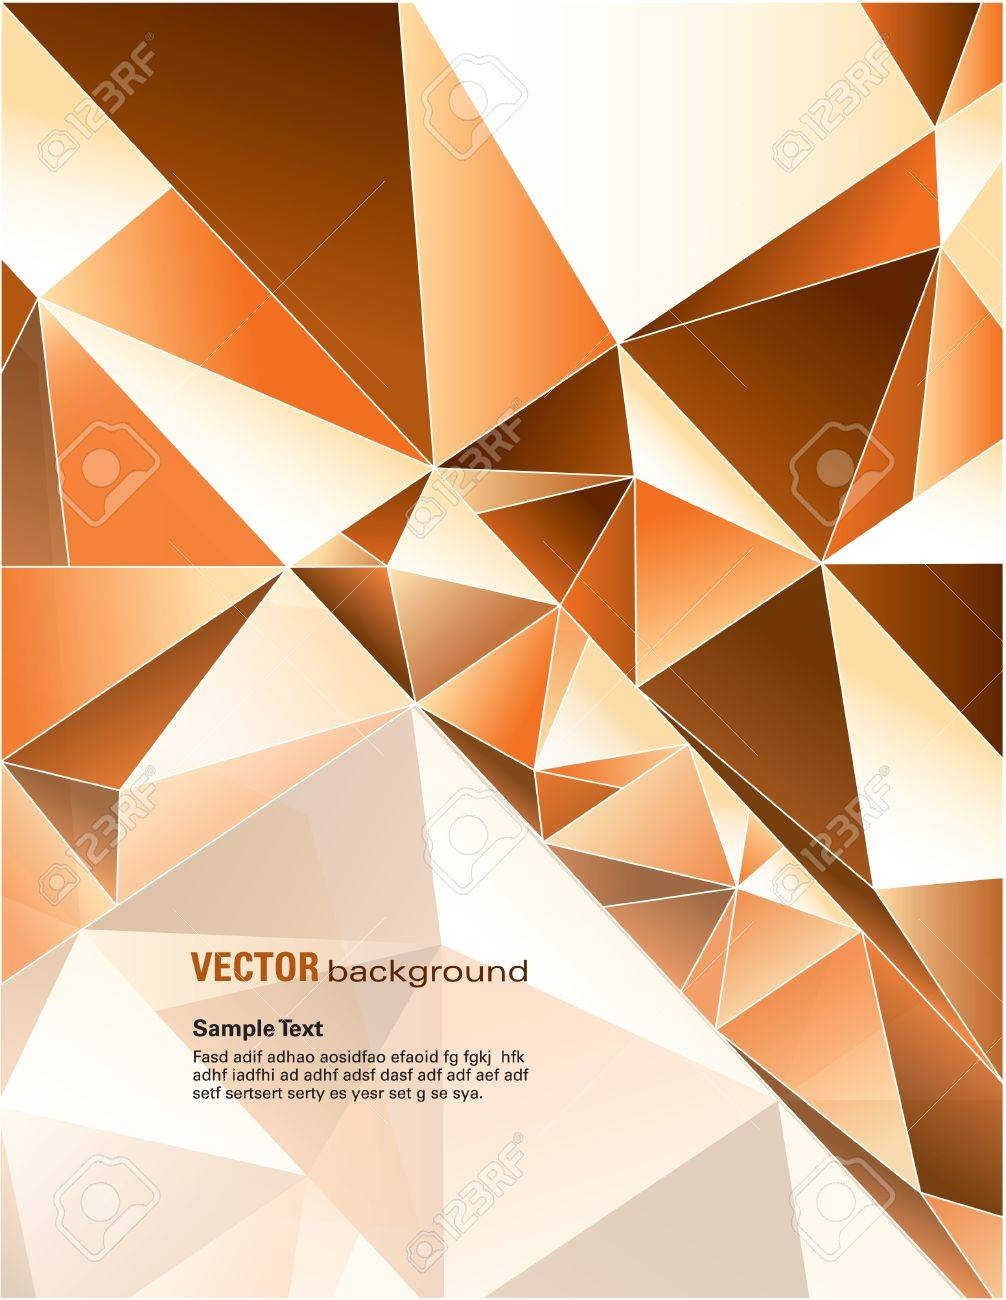 Abstract Vector Background  Eps10 Stock Vector - 18138030